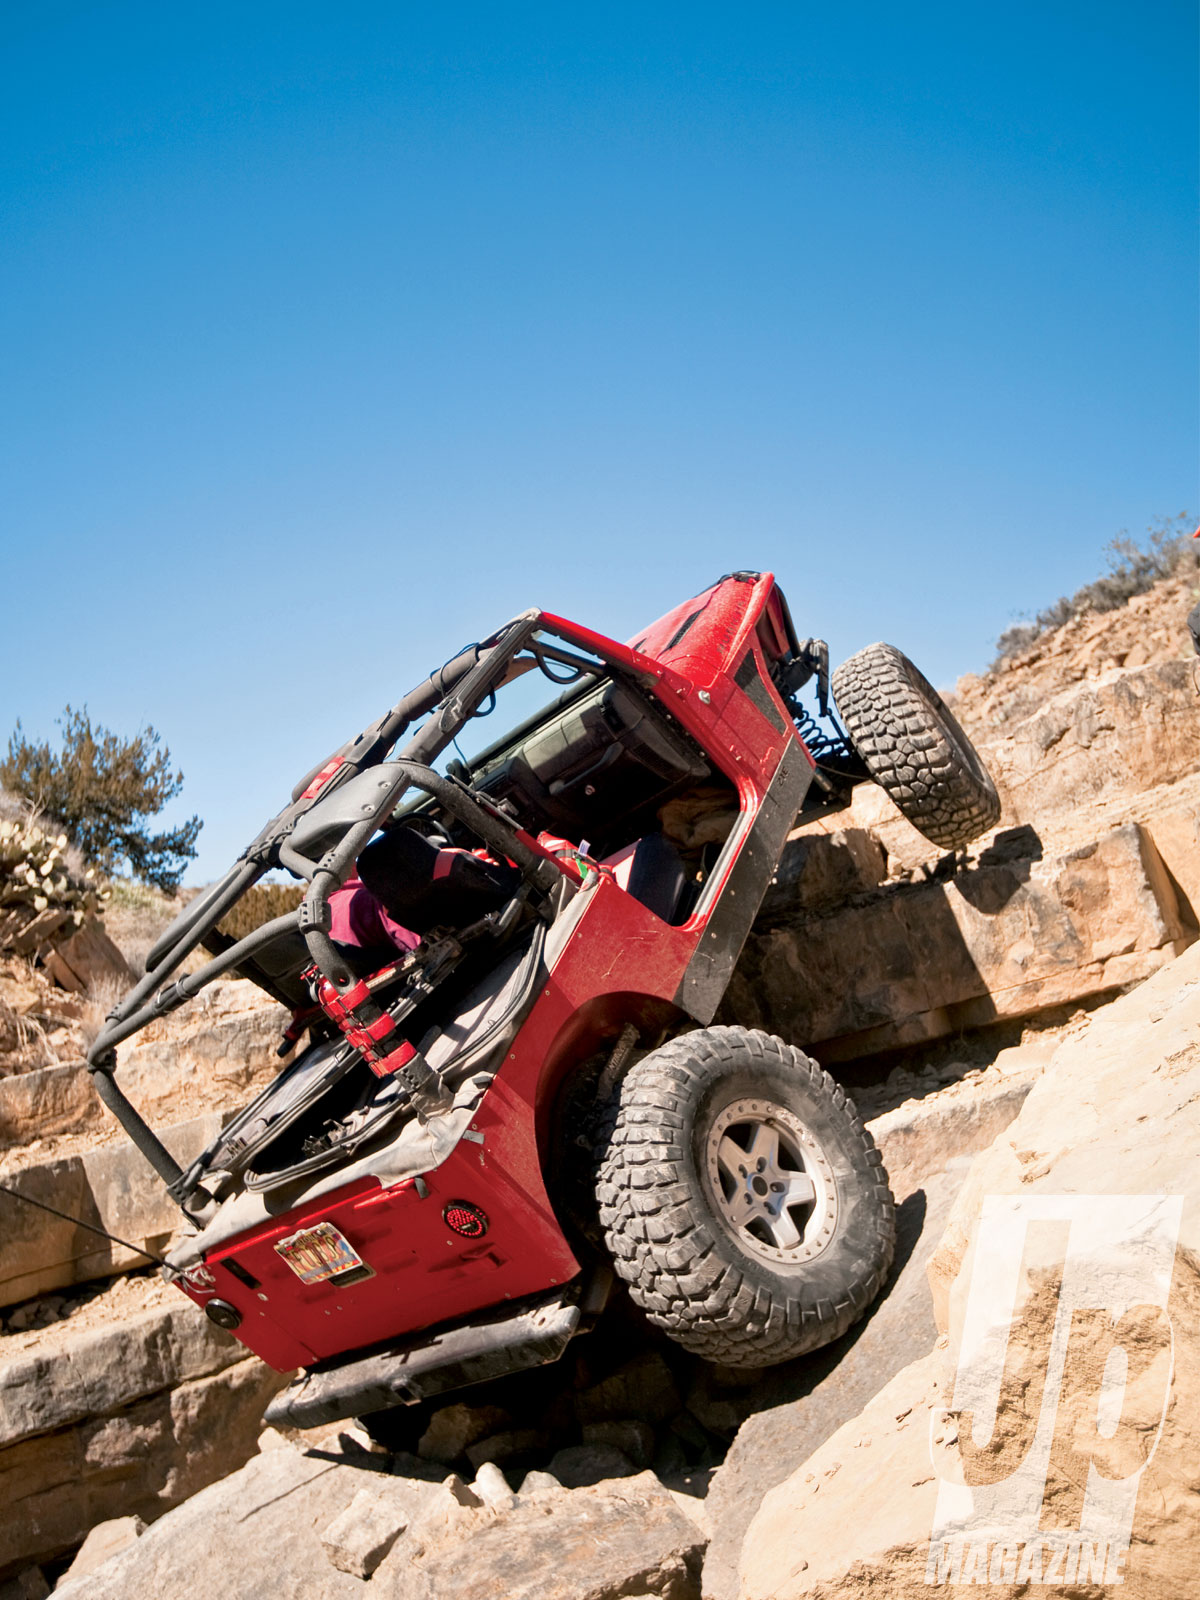 143 1103 07 o+154 1103 chile challenge las cruces new mexico+watchs jeep wrangler tj